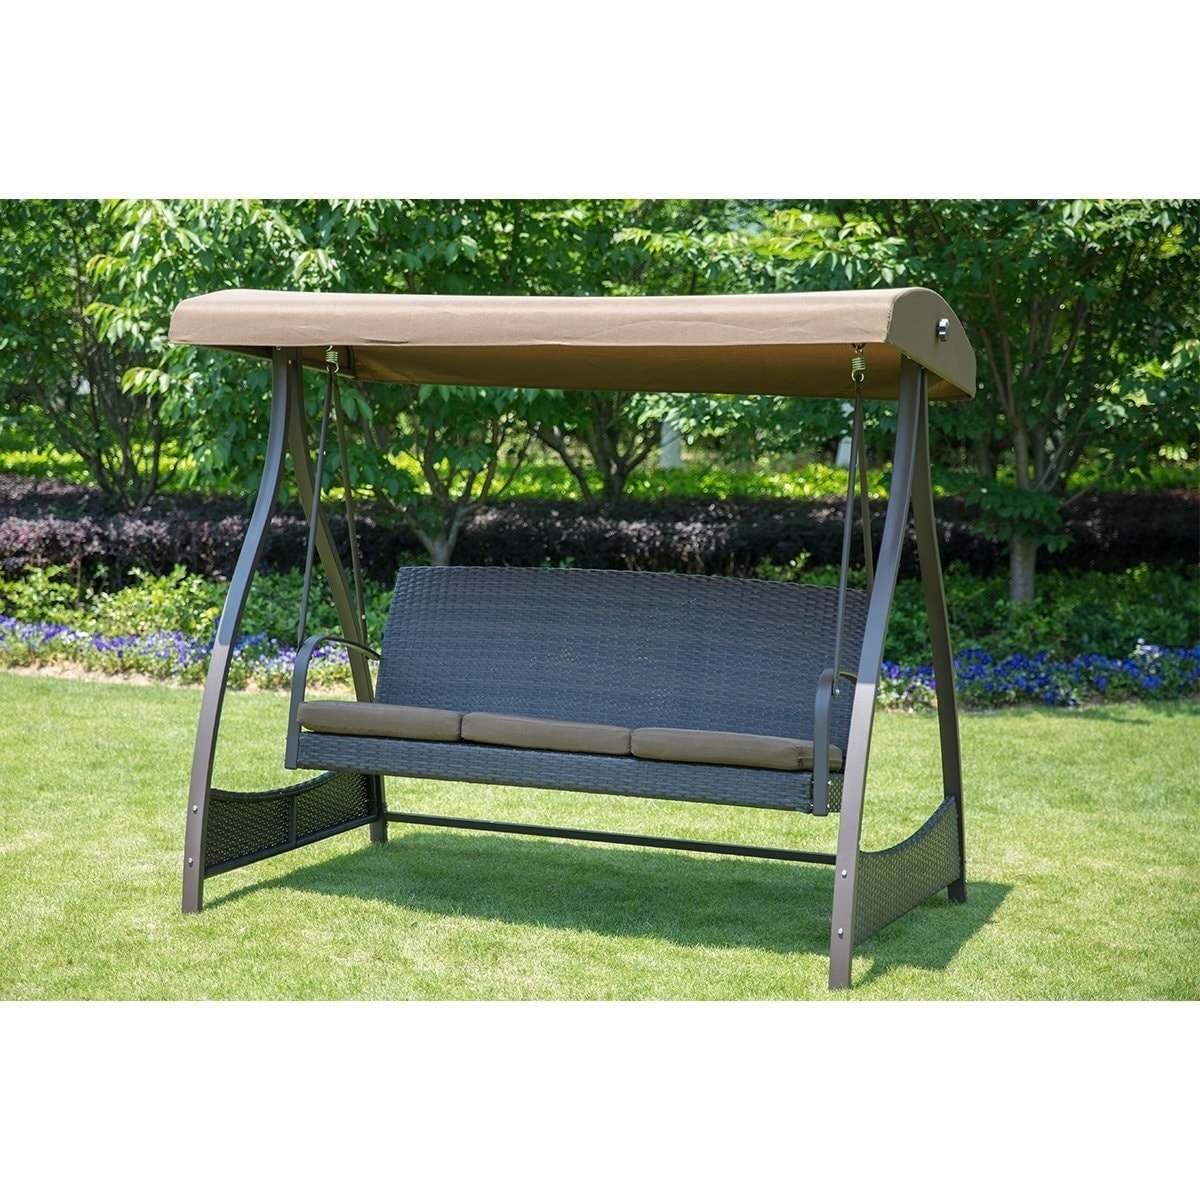 Sunlife Porch Lawn Glider Swing 3 Seat Hammock Chair With Arc Stand Steel Frame Garden Canopy Lounger Free Shipping Today 20370913